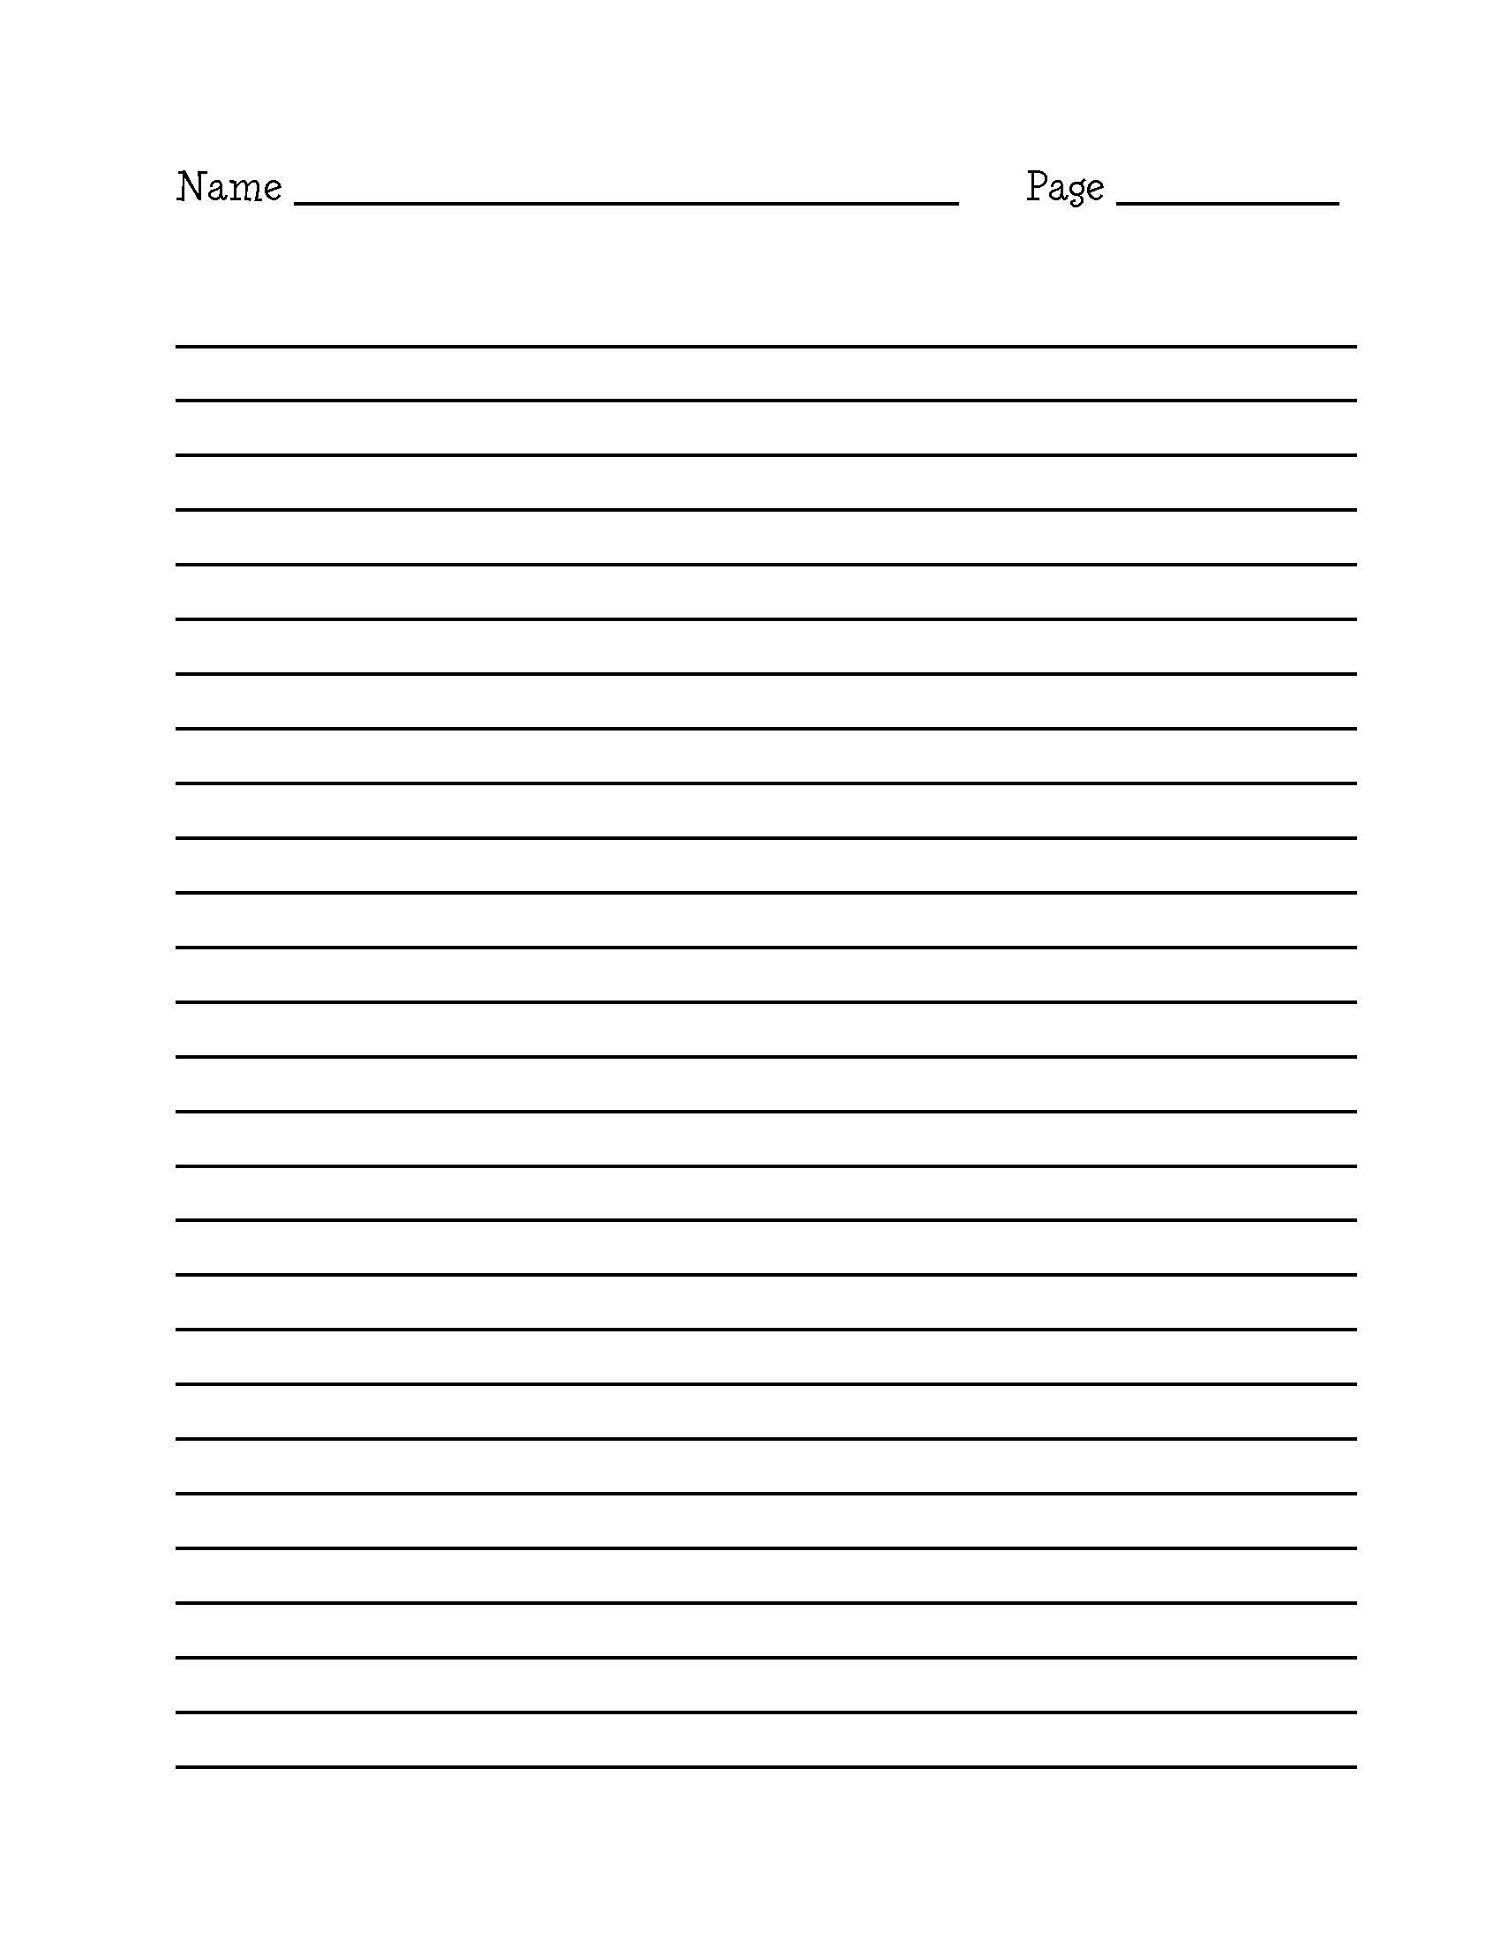 Exceptional Lined Paper For Writing For Cute Writing Paper | Dear Joya Intended Microsoft Word Lined Paper Template